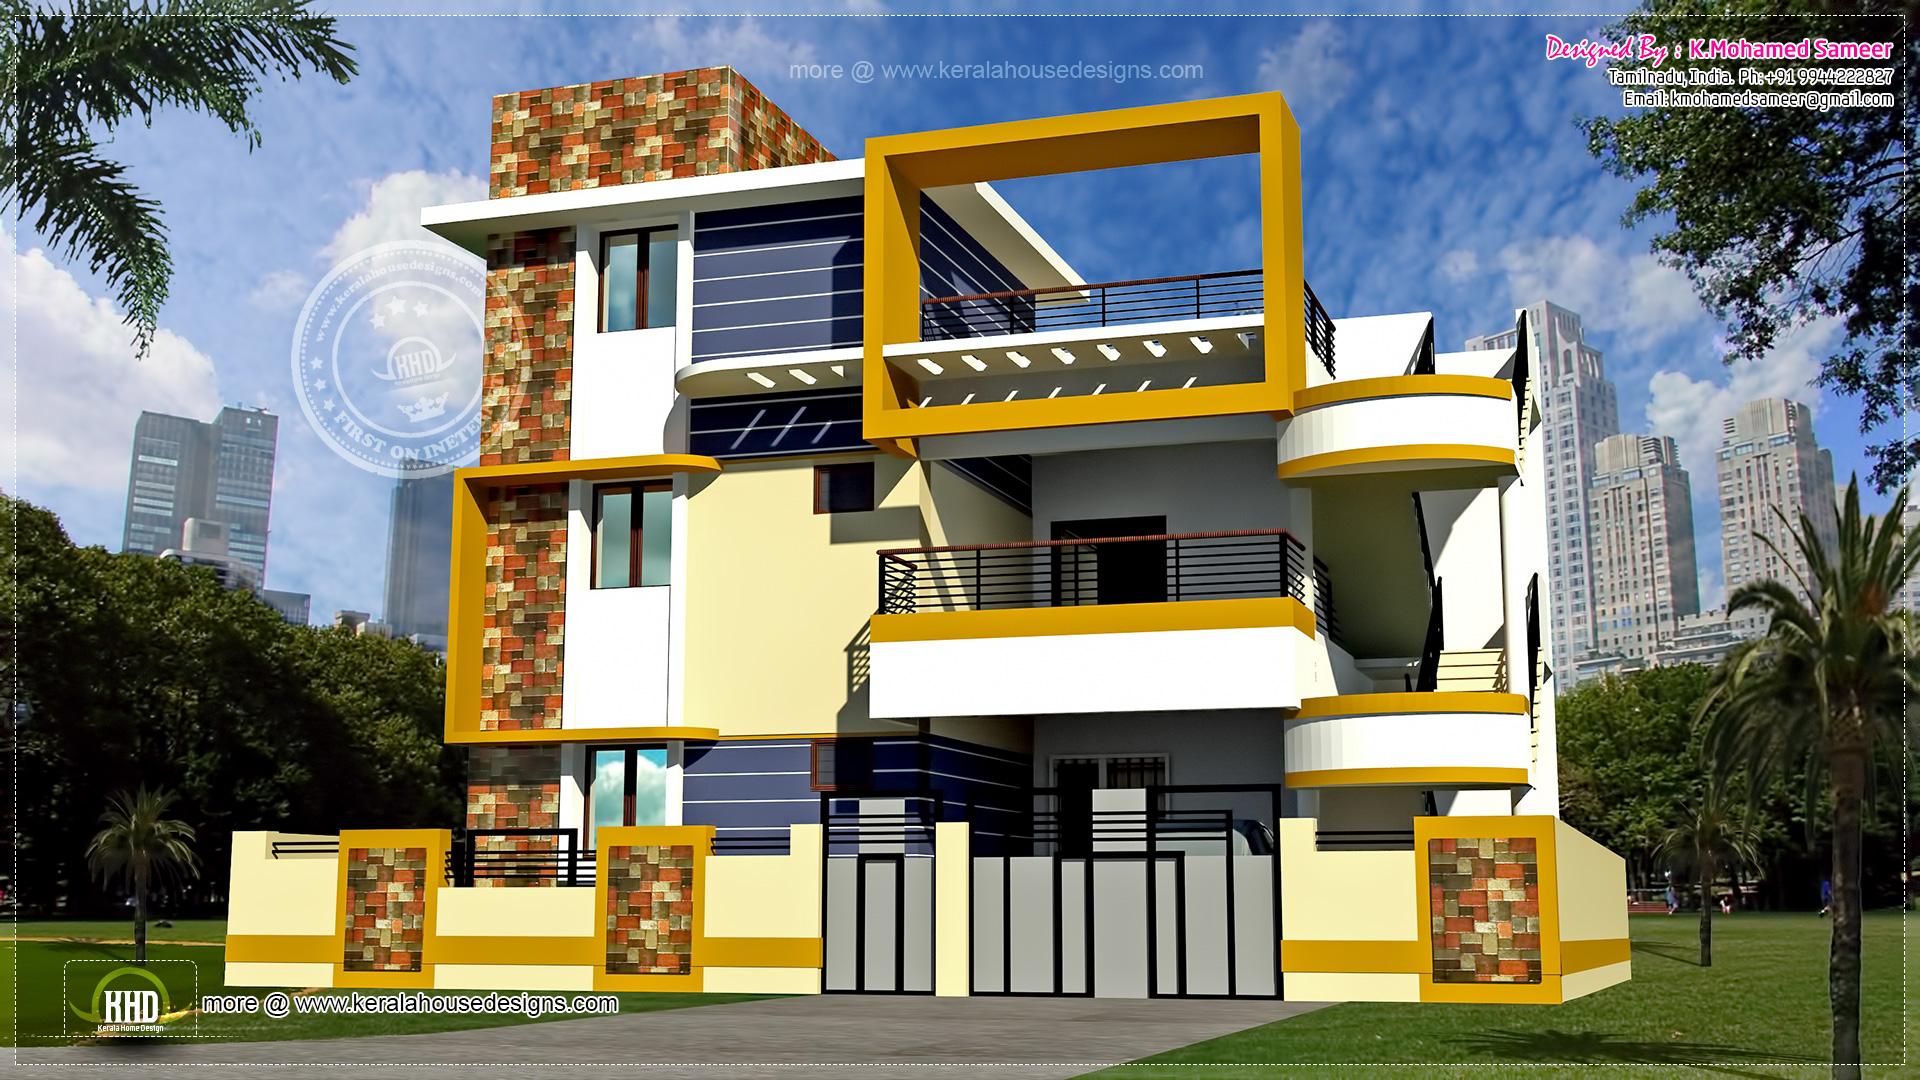 Modern 3 floor tamilnadu house design kerala home design for Decorating sites for houses